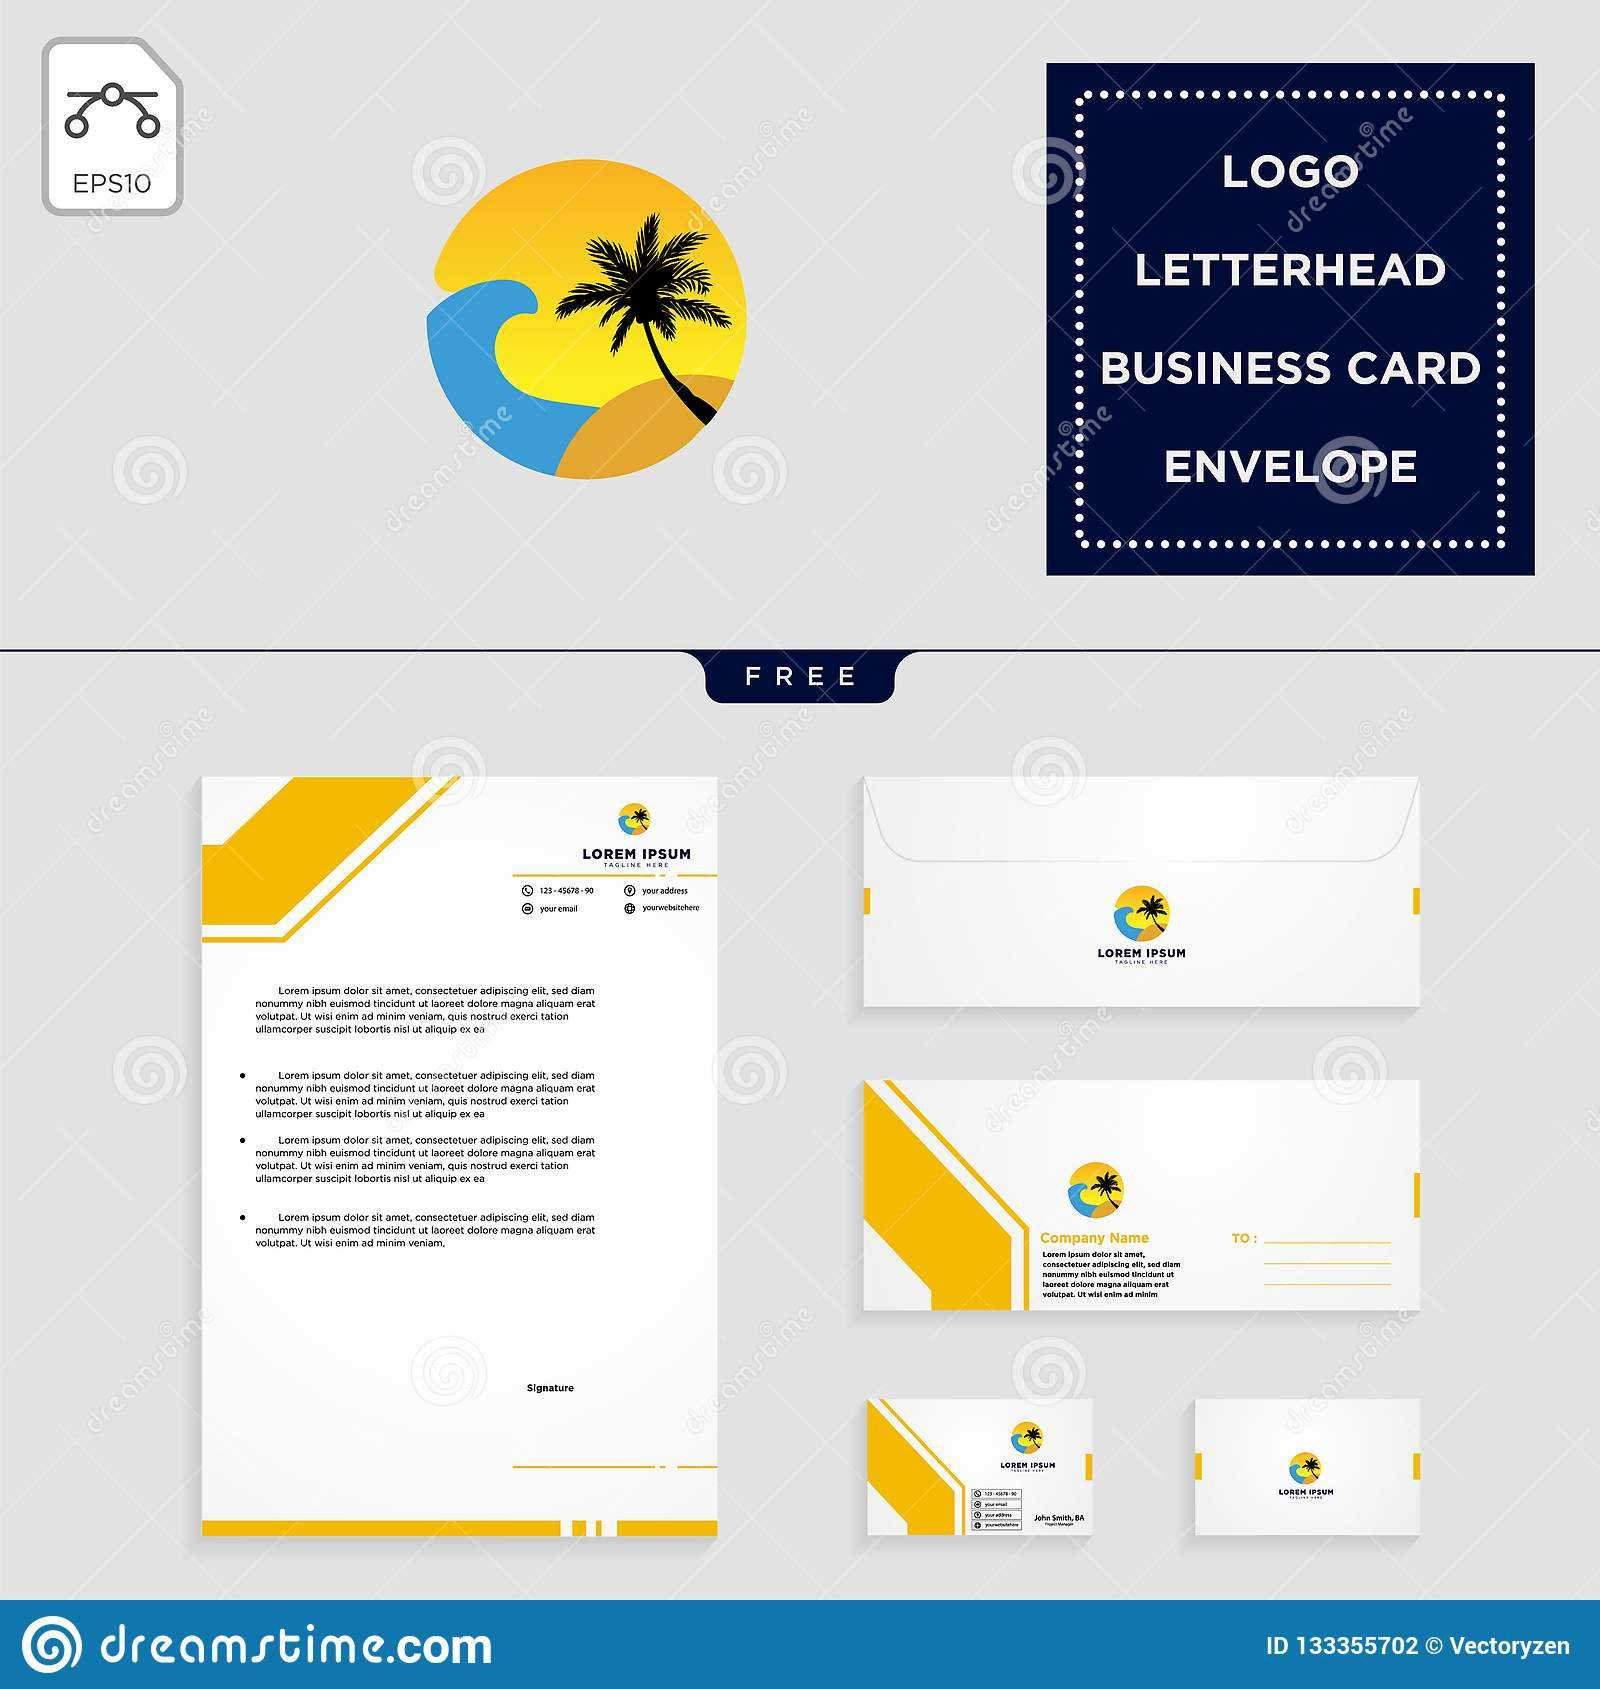 Holidays Logo Template And Free Letterhead, Envelope with regard to Business Card Letterhead Envelope Template